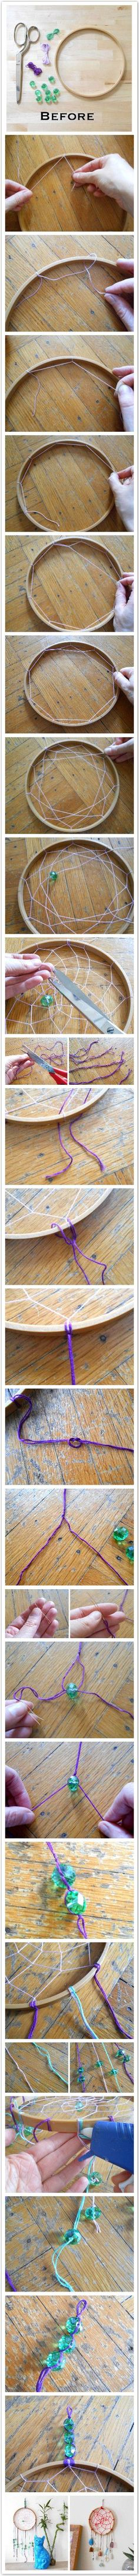 DIY dream-catcher photo tutorial